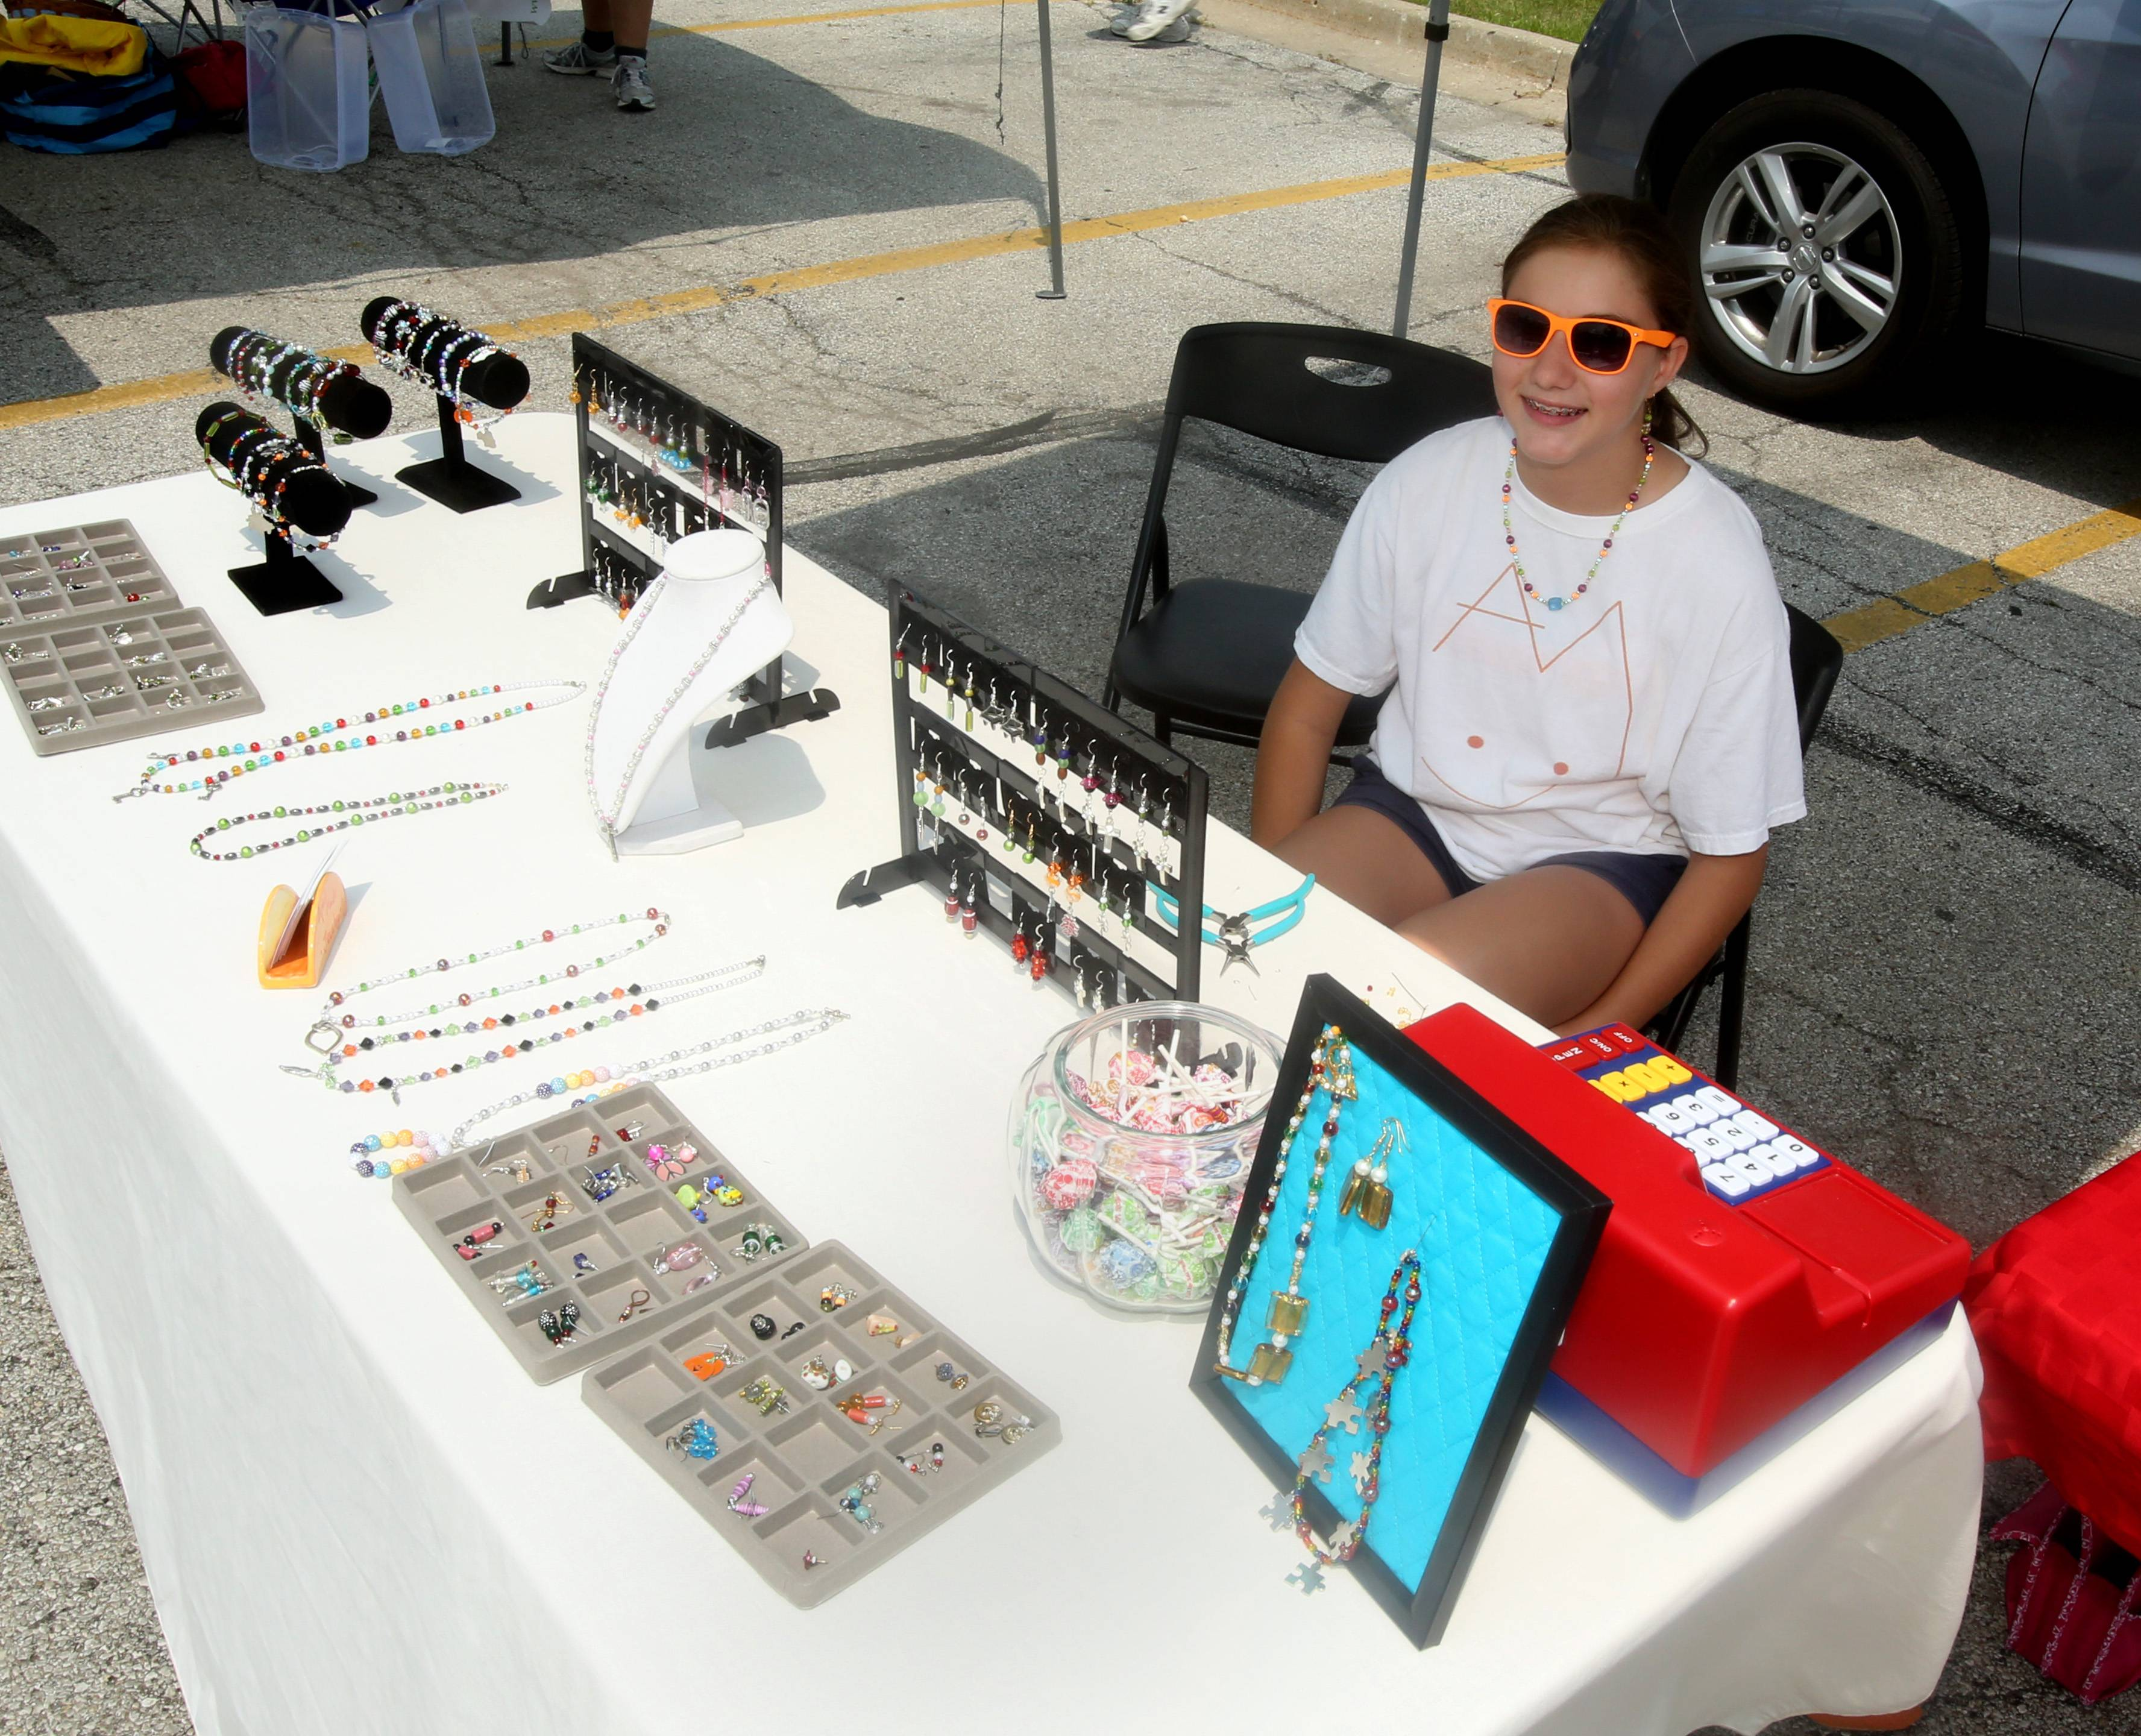 April Kochman of Aurora, who asked to sell her handmade jewelry at the Aurora farmers market two years ago, is now an experienced vendor who also sells at craft fairs.